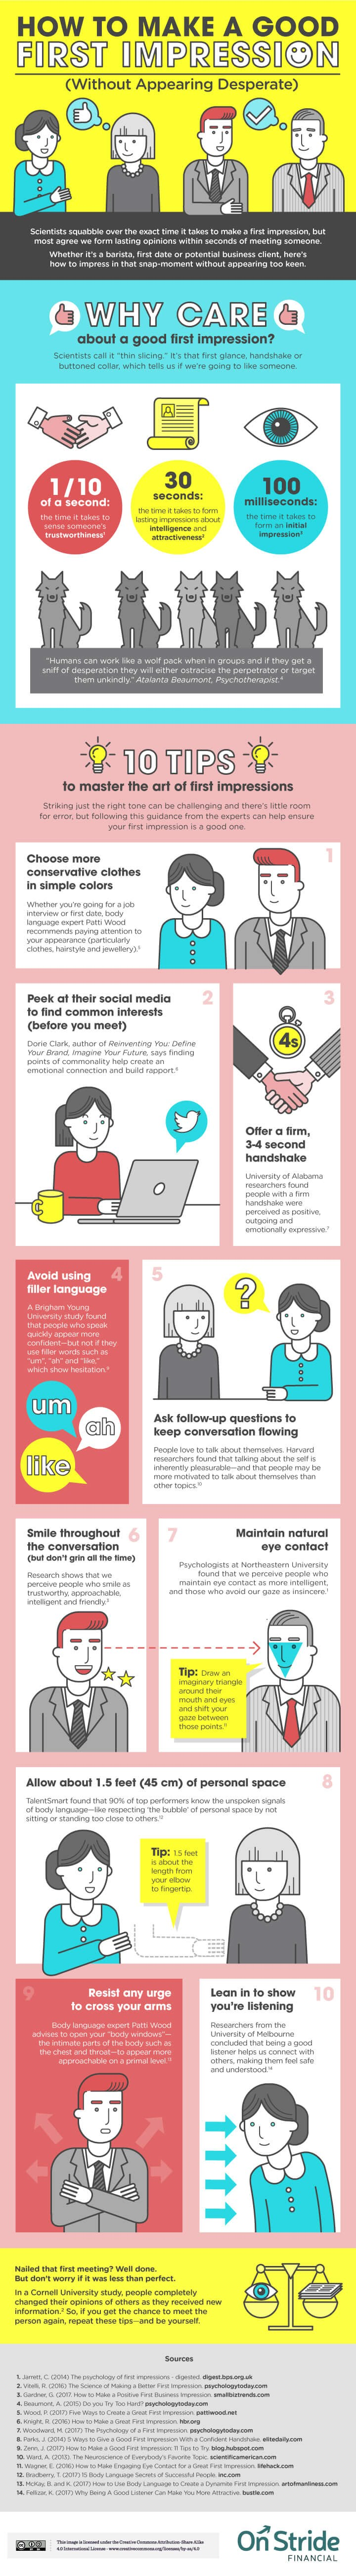 infographic - How to Make a Good First Impression (Without Appearing Desperate)